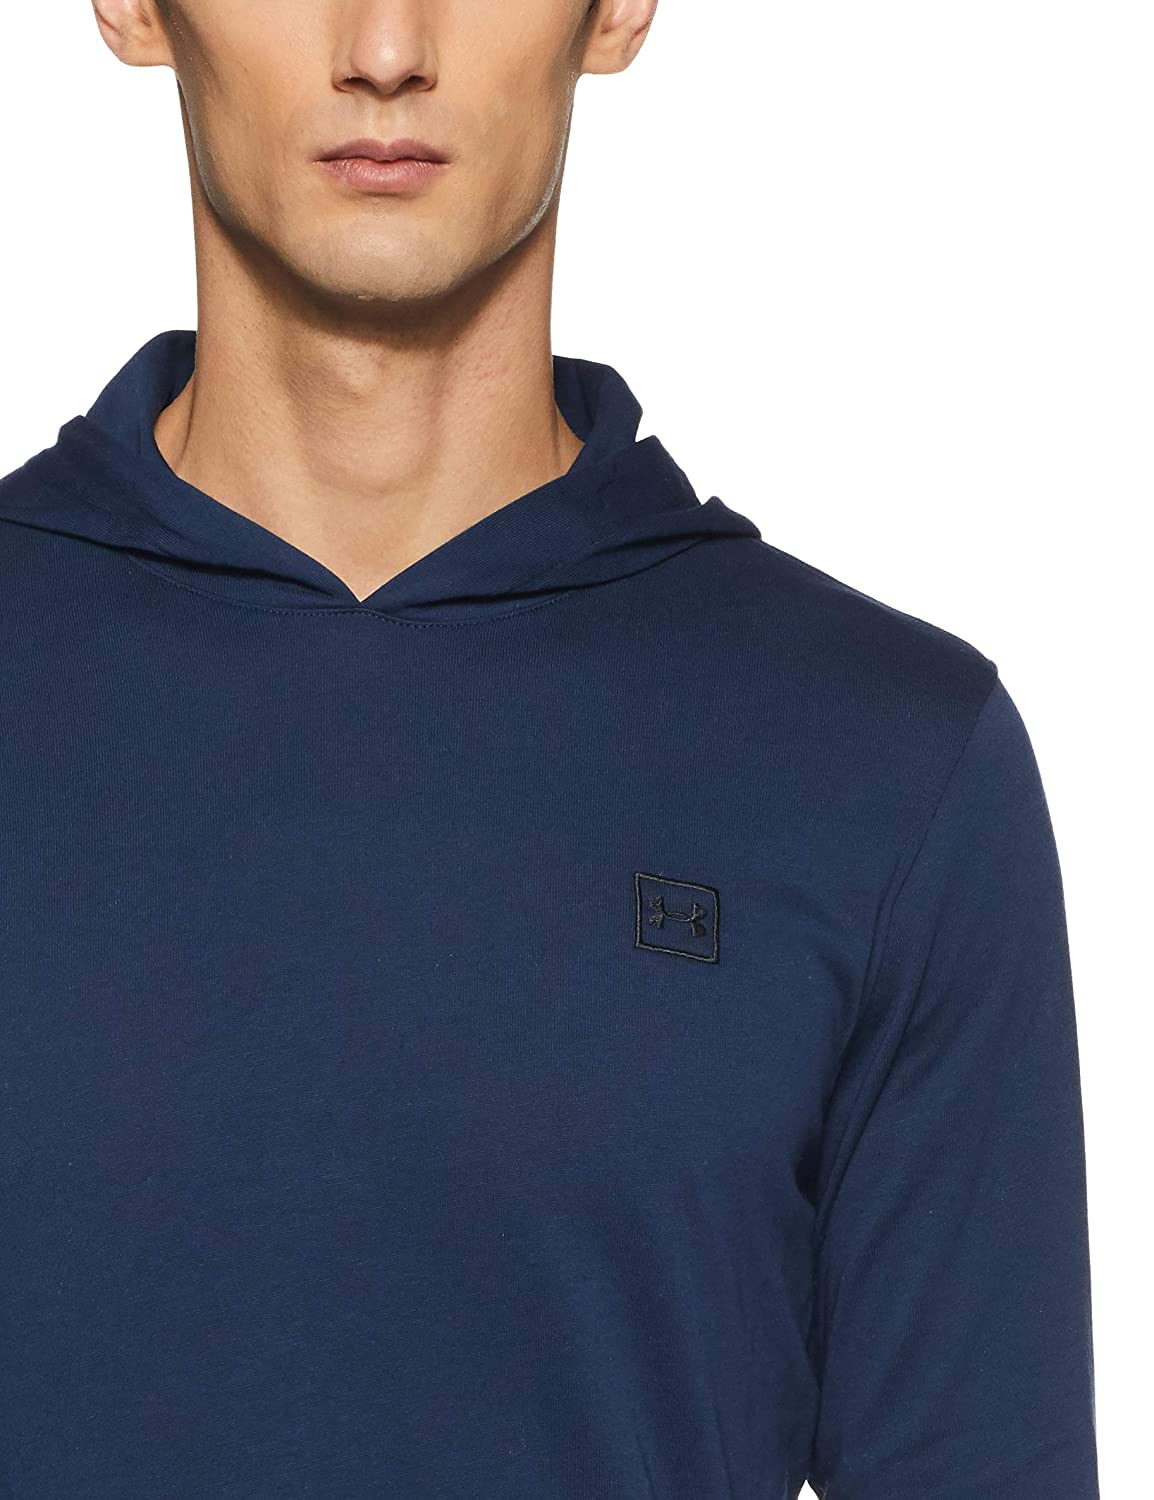 Under Armour Mens Rival Jersey Hoodie Under Armour Apparel 1320730